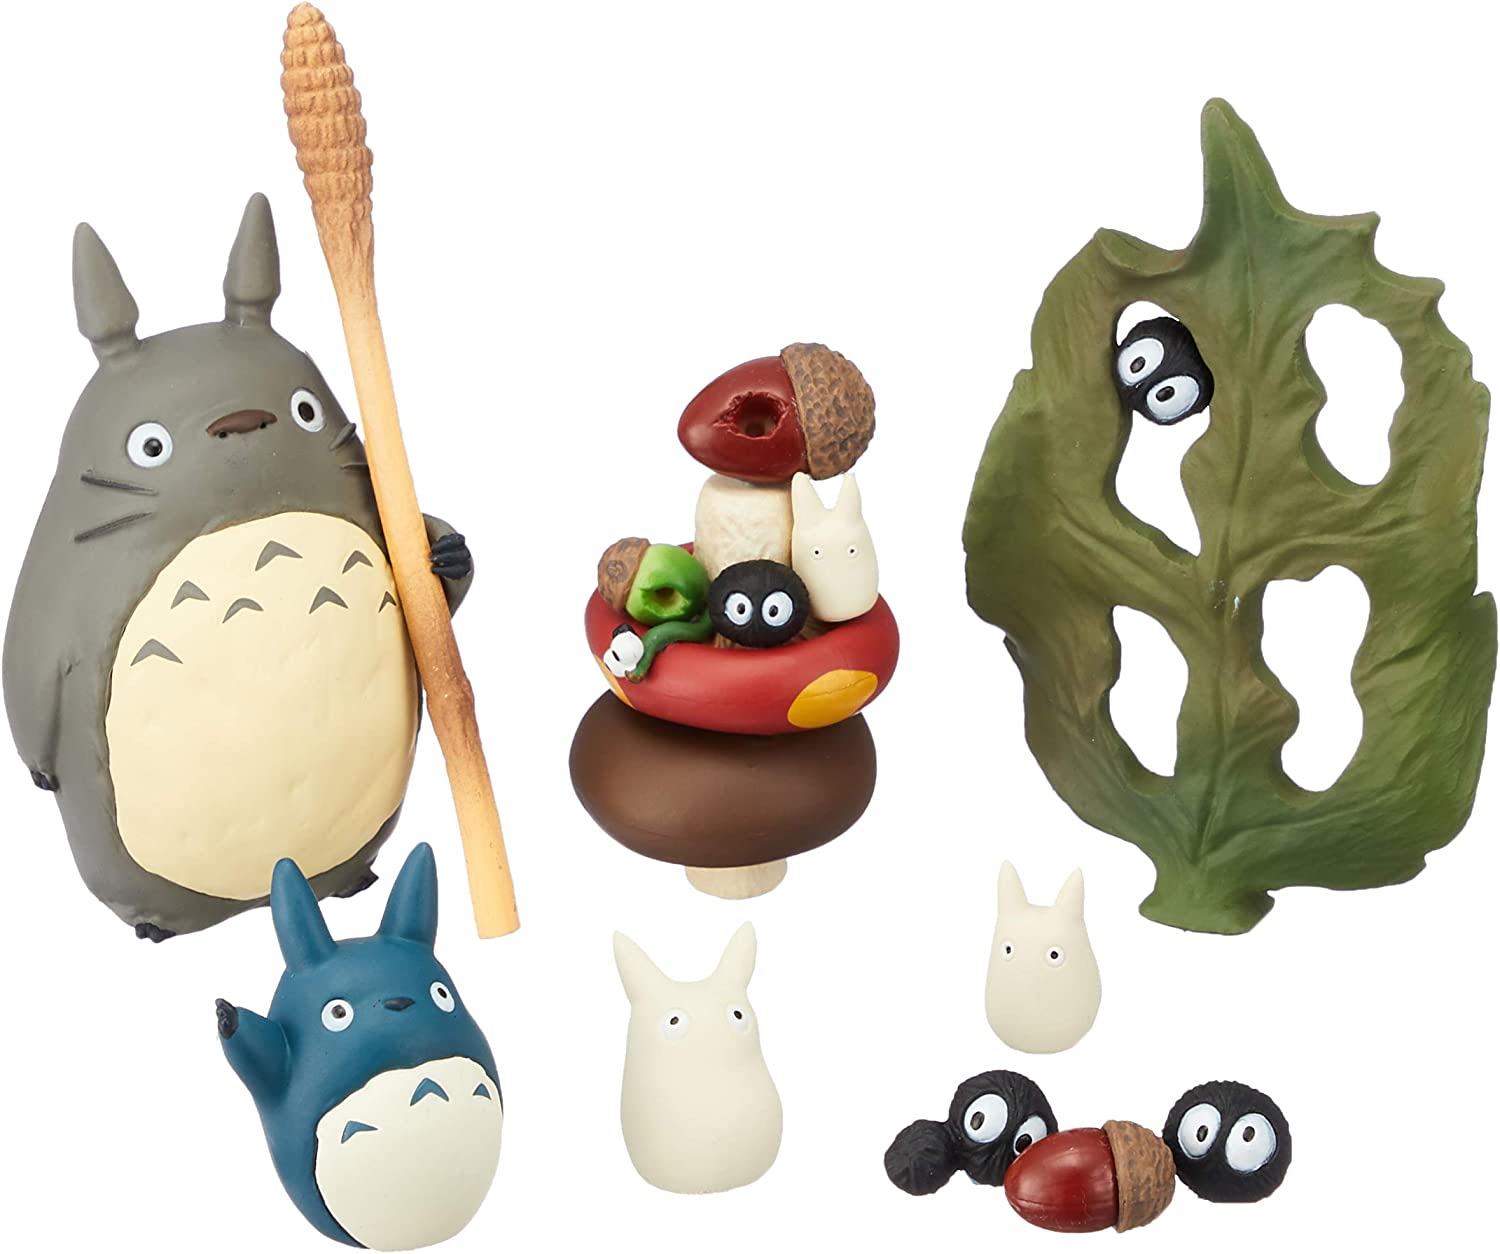 Amazon Com Studio Ghibli Via Bluefin Ensky My Neighbor Totoro Assortment Stacking Figure Official Studio Ghibli Merchandise Toys Games